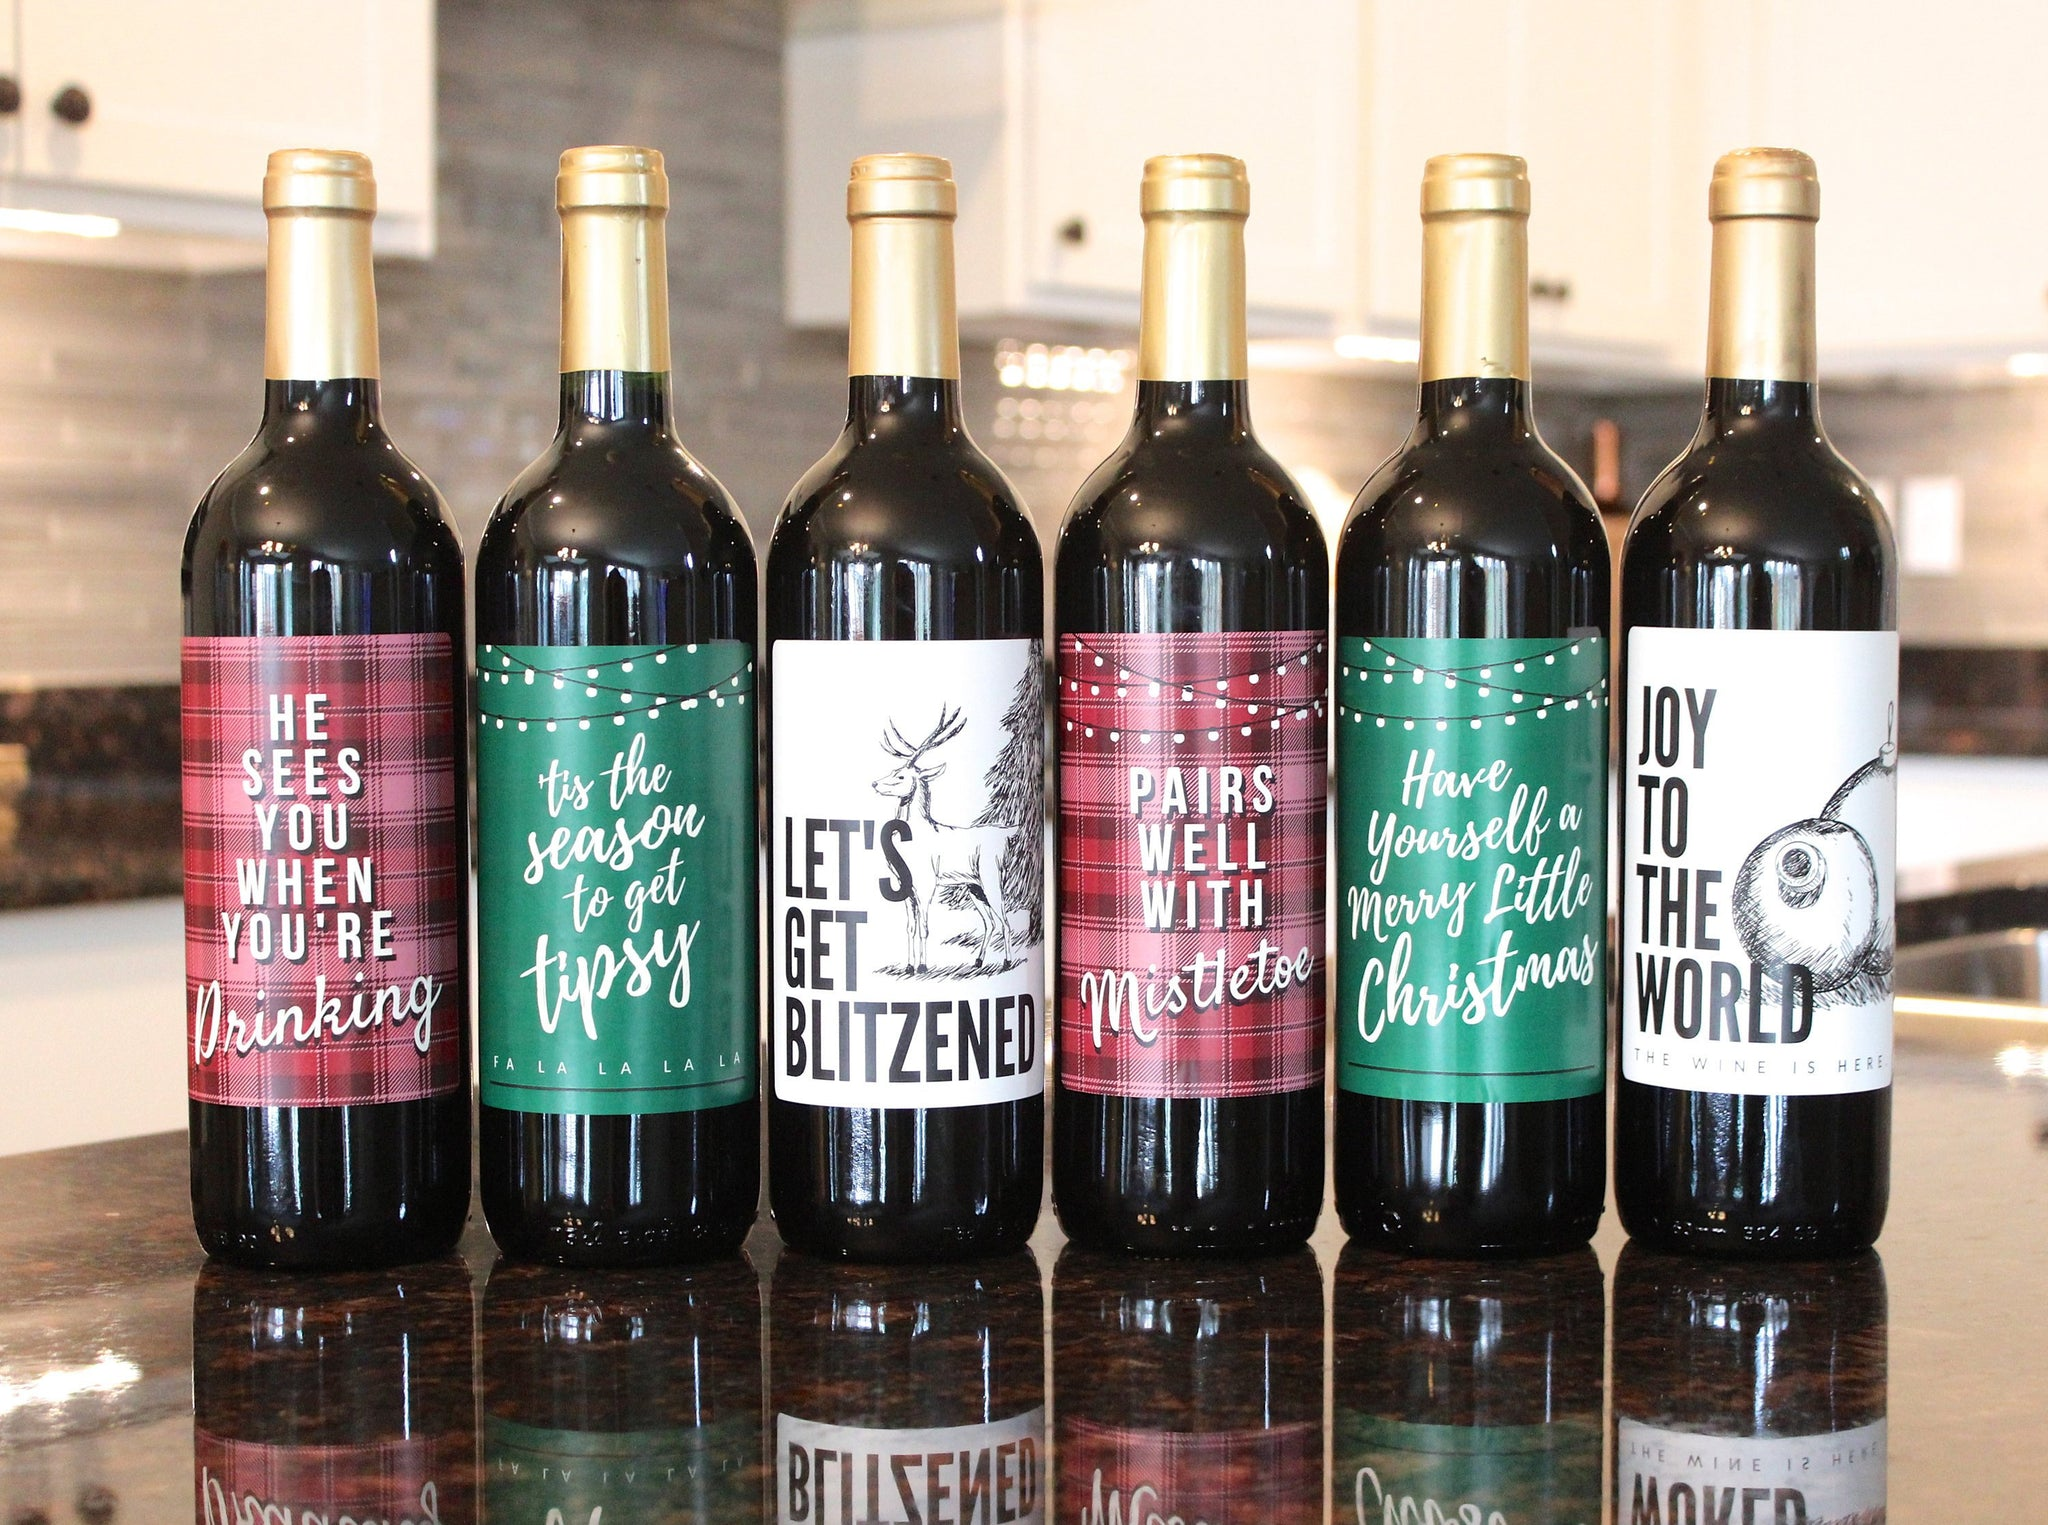 6 Wine Bottle Labels for Christmas Party Decorations and Favors - Perfect for Holiday Party and Gifts for Teachers, Family, and Friends